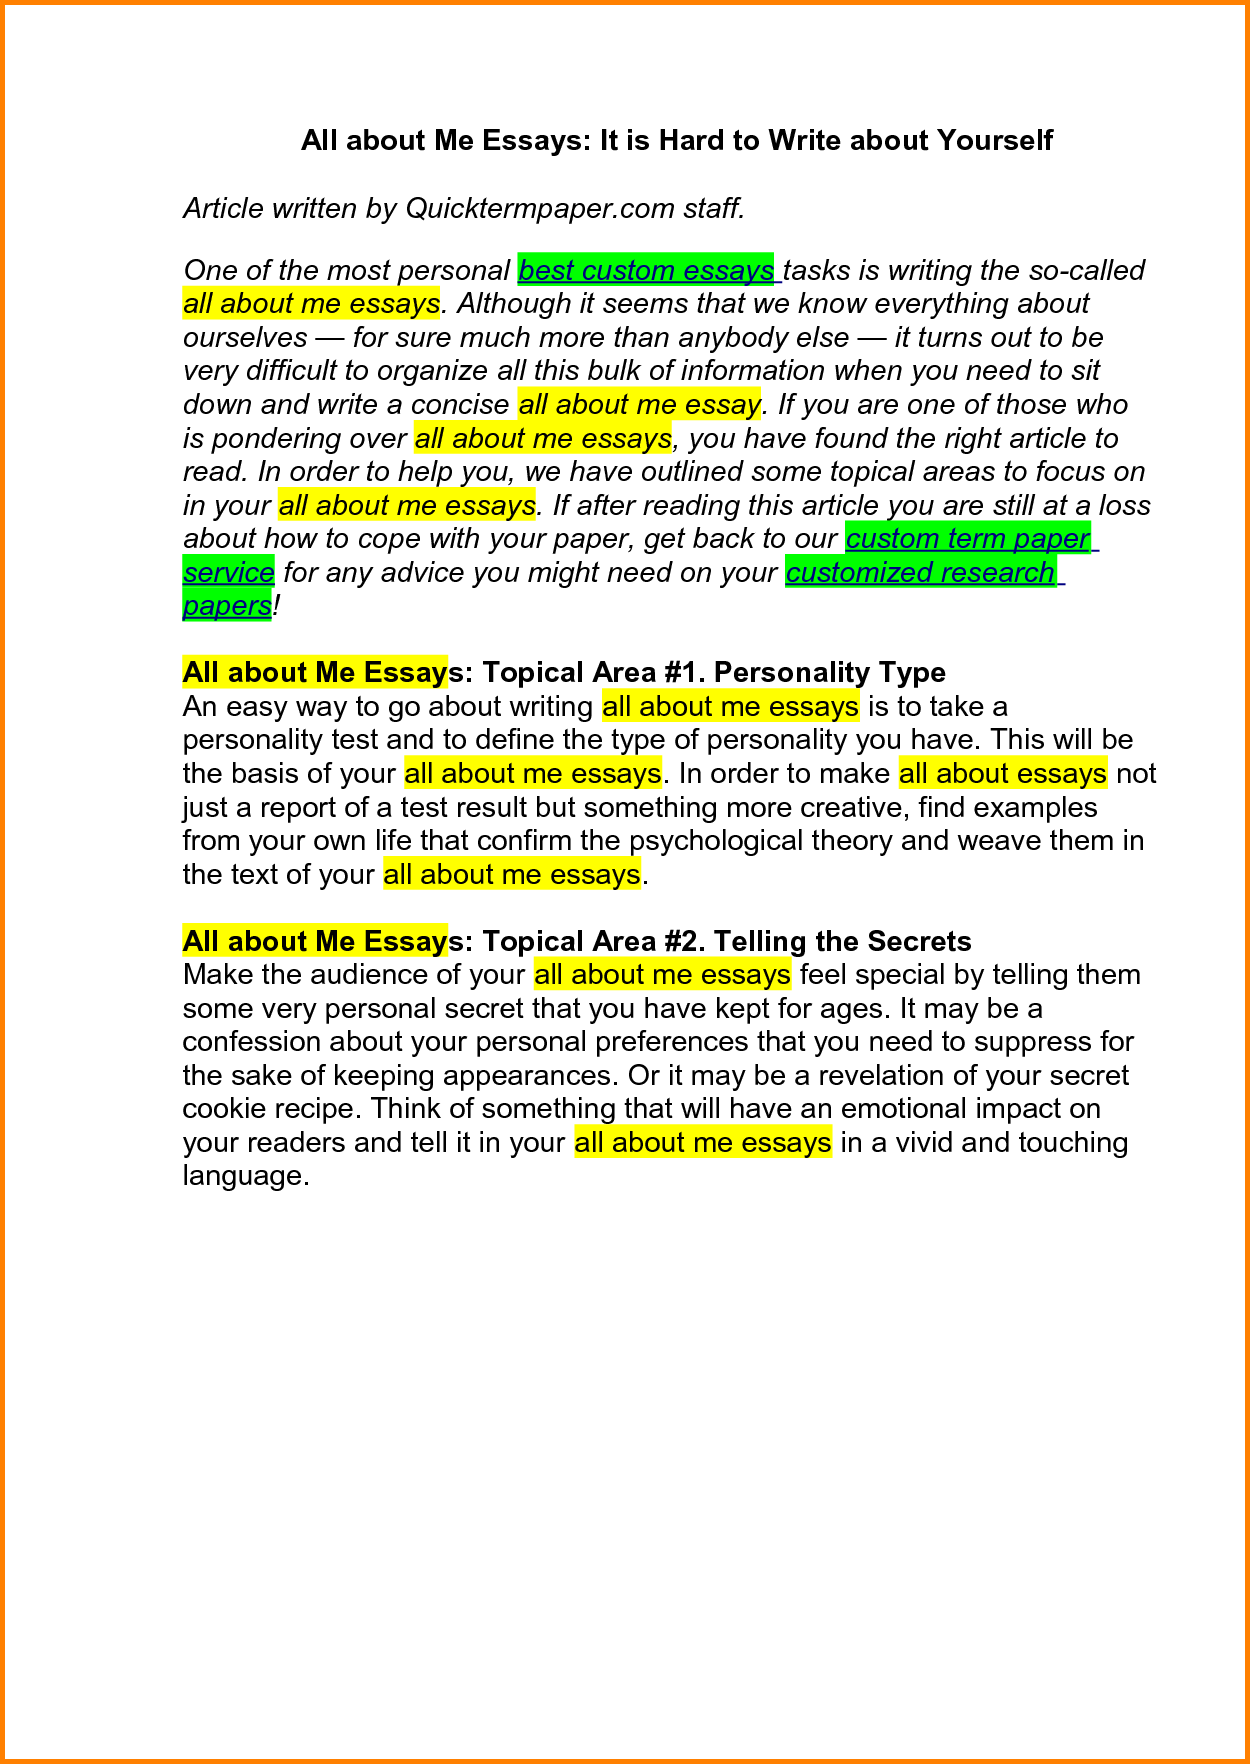 011 How Start Essay About Yourself Metaphor Introduction Informative Write Tell An Example Pdf Sample Reflective In Spanish Tumblr Mba Scholarship Narrative Talk Ideas Staggering To For A Application Full